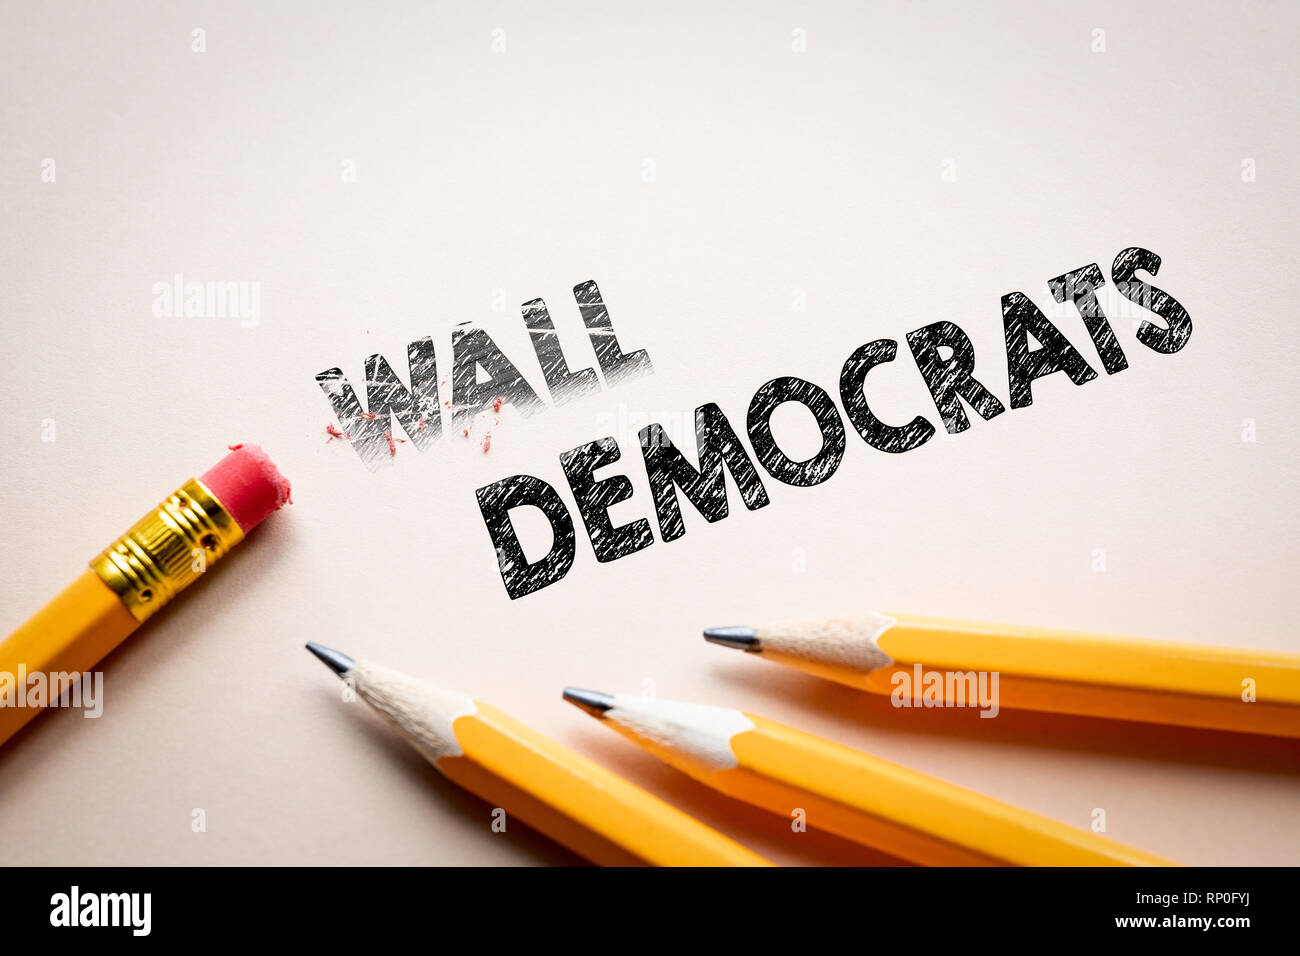 Making Wall in to Democrats by eraser Stock Photo